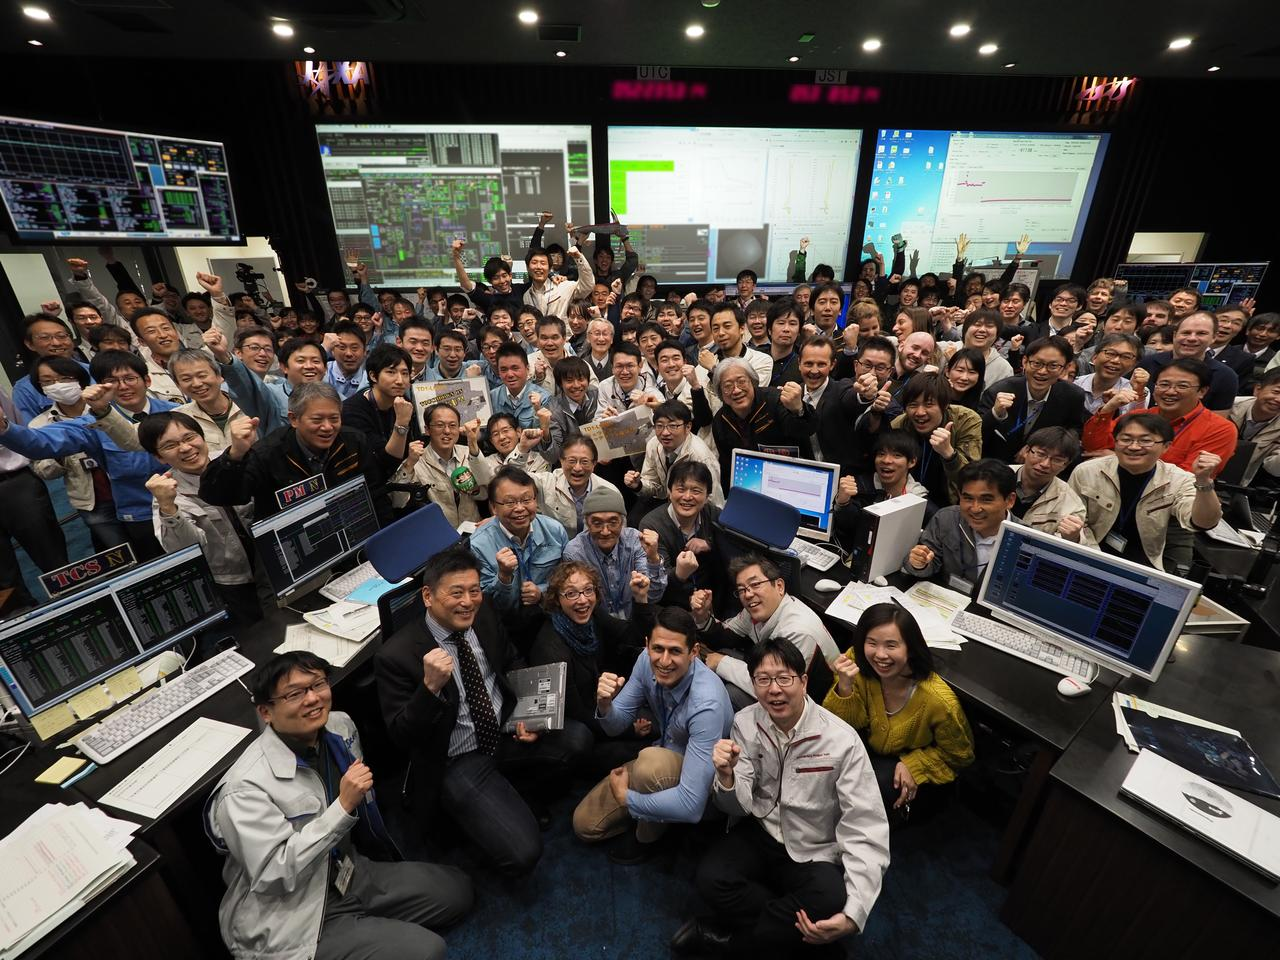 Scientists celebrate at JAXA following the touchdown of Hayabusa 2